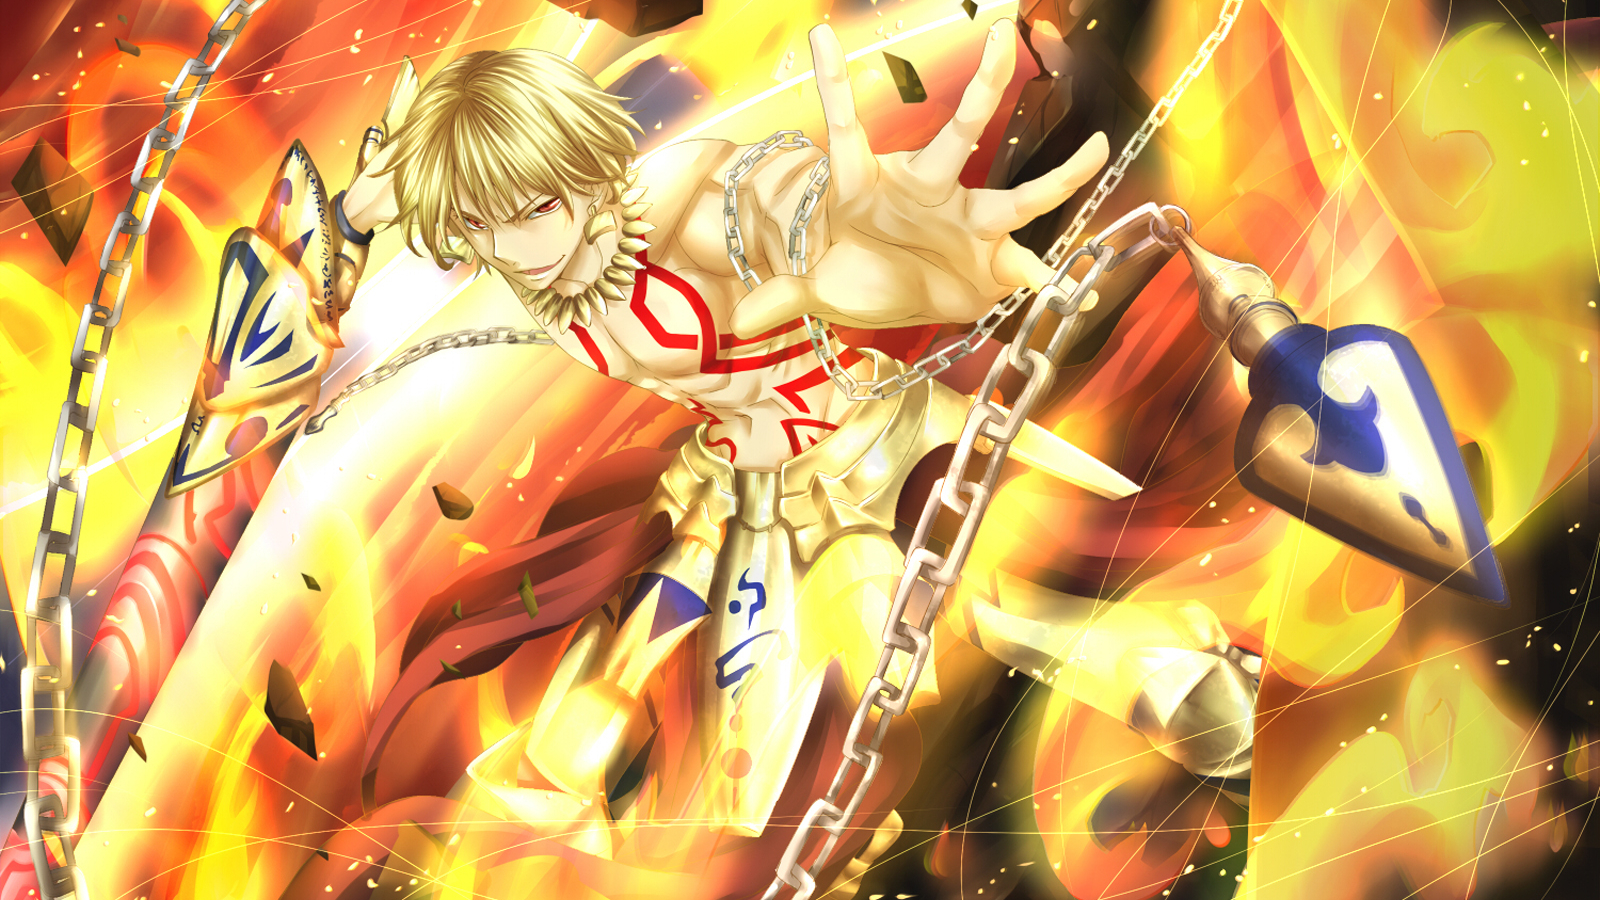 Free Download Gilgamesh Fate Stay Night Chain Weapon Anime Hd